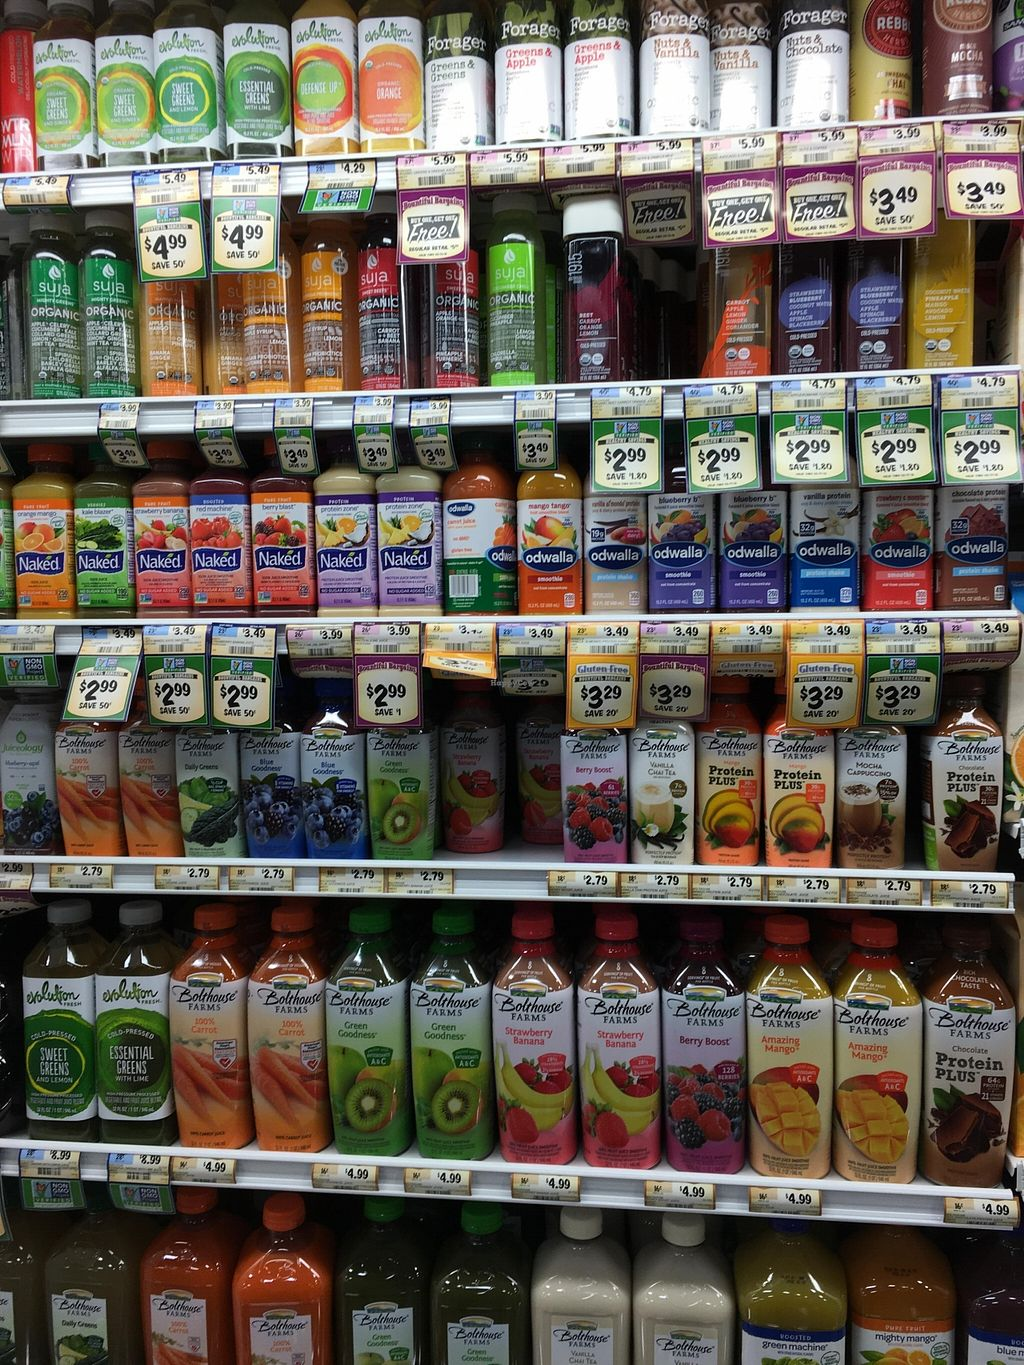 """Photo of Sprouts Farmers Market  by <a href=""""/members/profile/cookiem"""">cookiem</a> <br/>Beverages- juices <br/> February 20, 2016  - <a href='/contact/abuse/image/68375/137020'>Report</a>"""